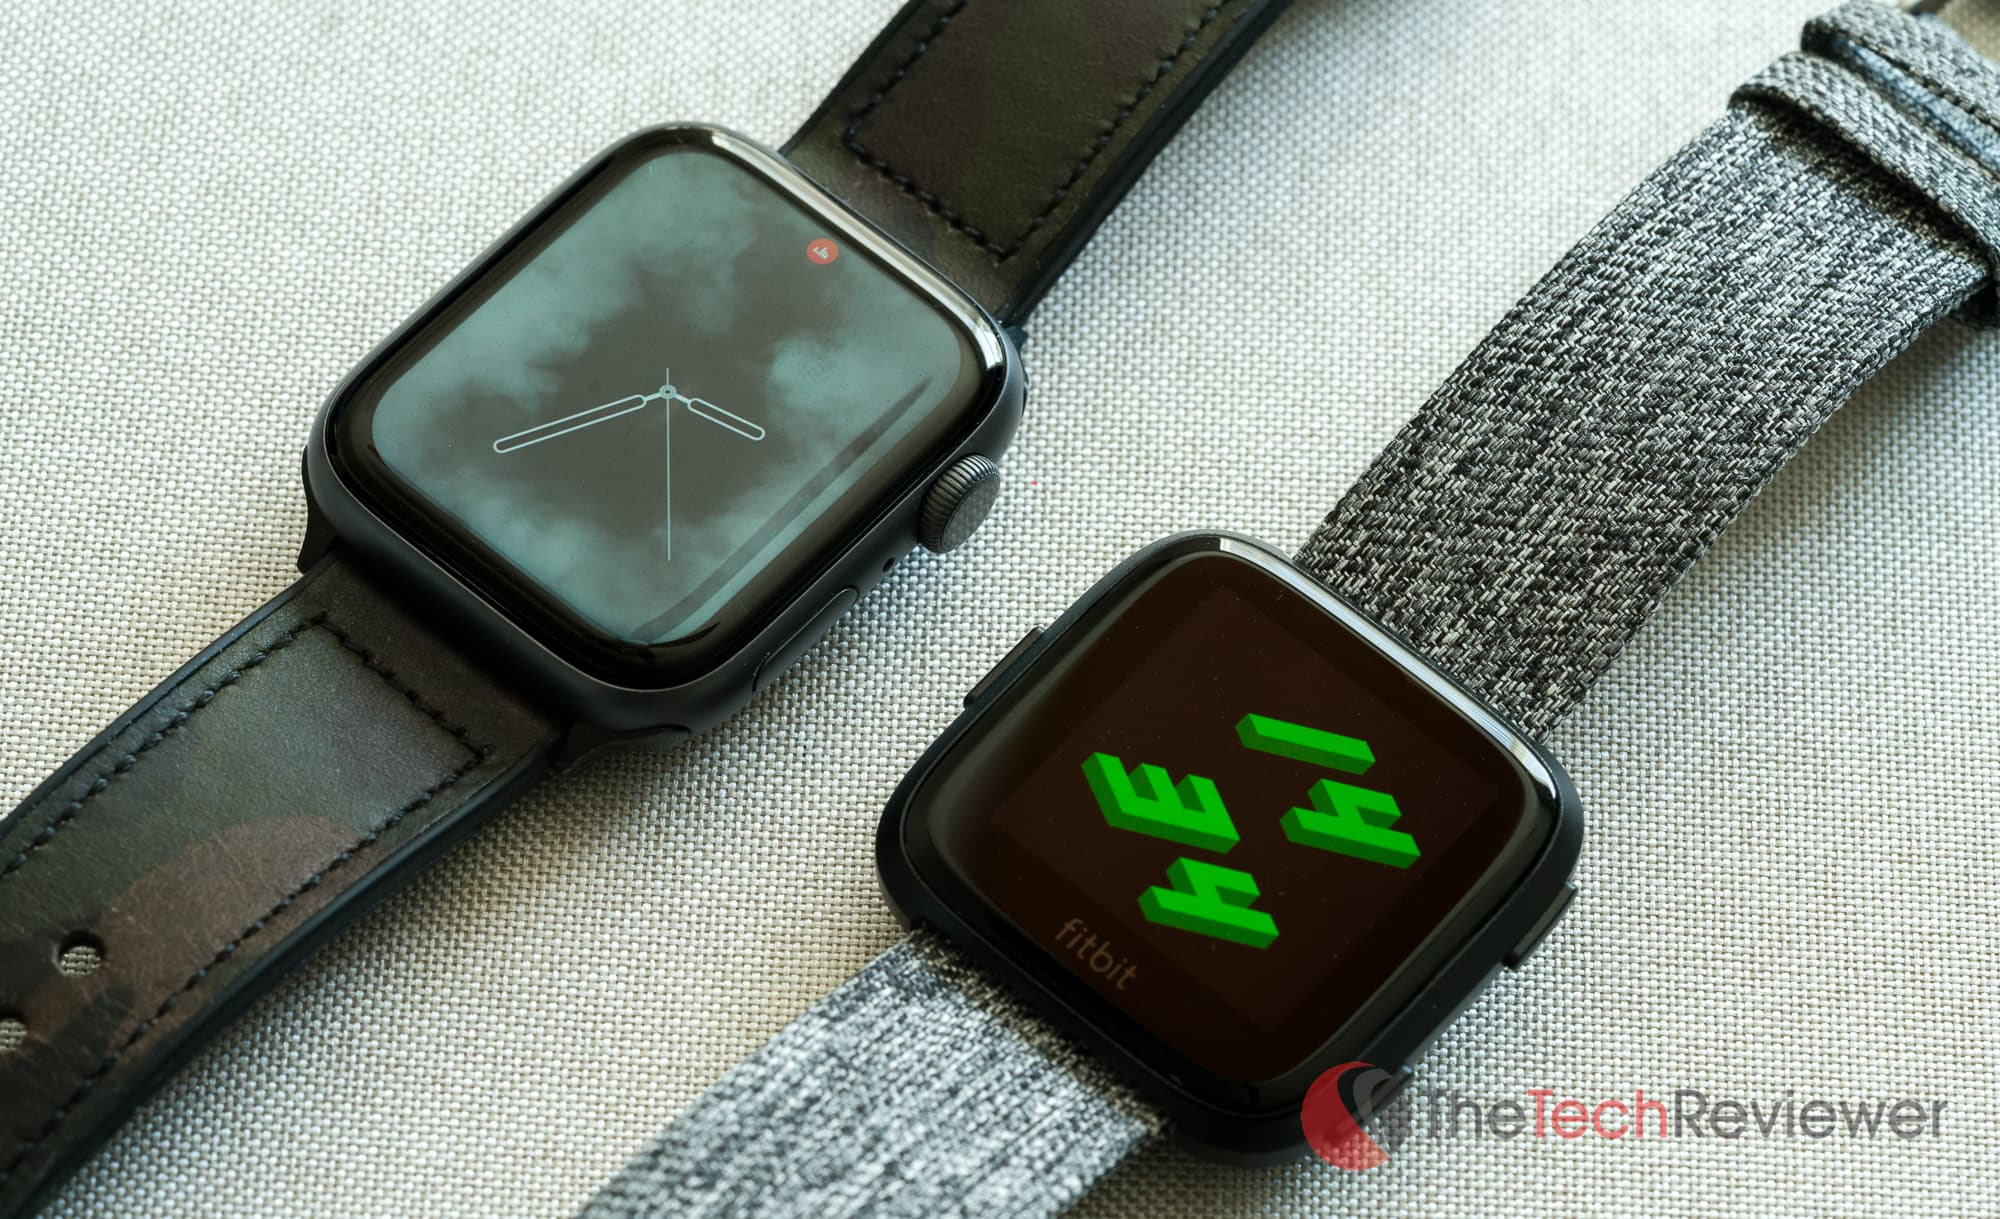 Versa vs Apple Watch Customization